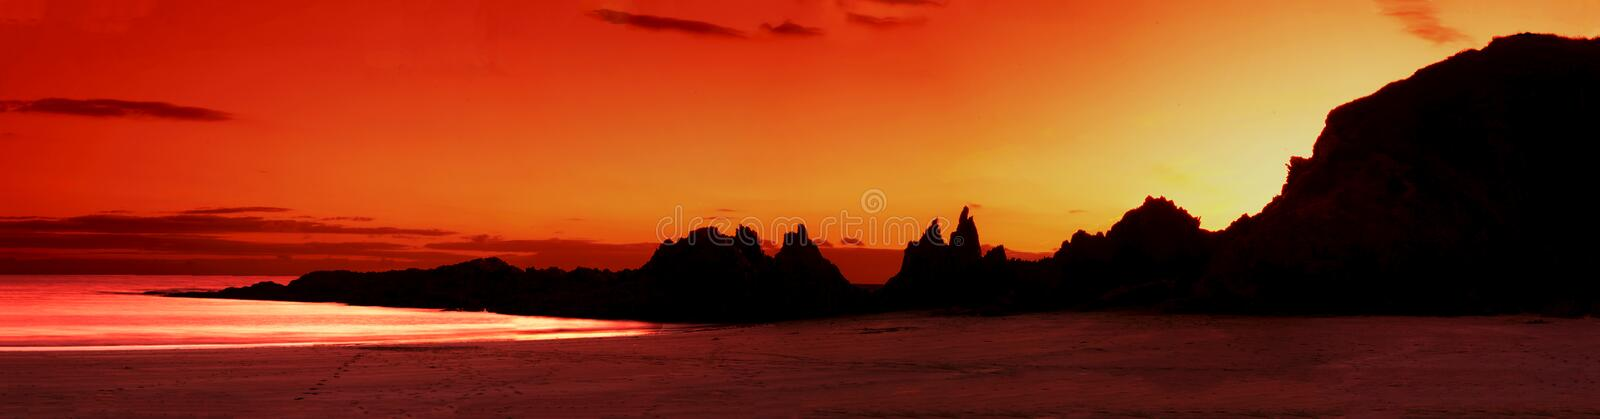 Por do sol de Devon fotografia de stock royalty free